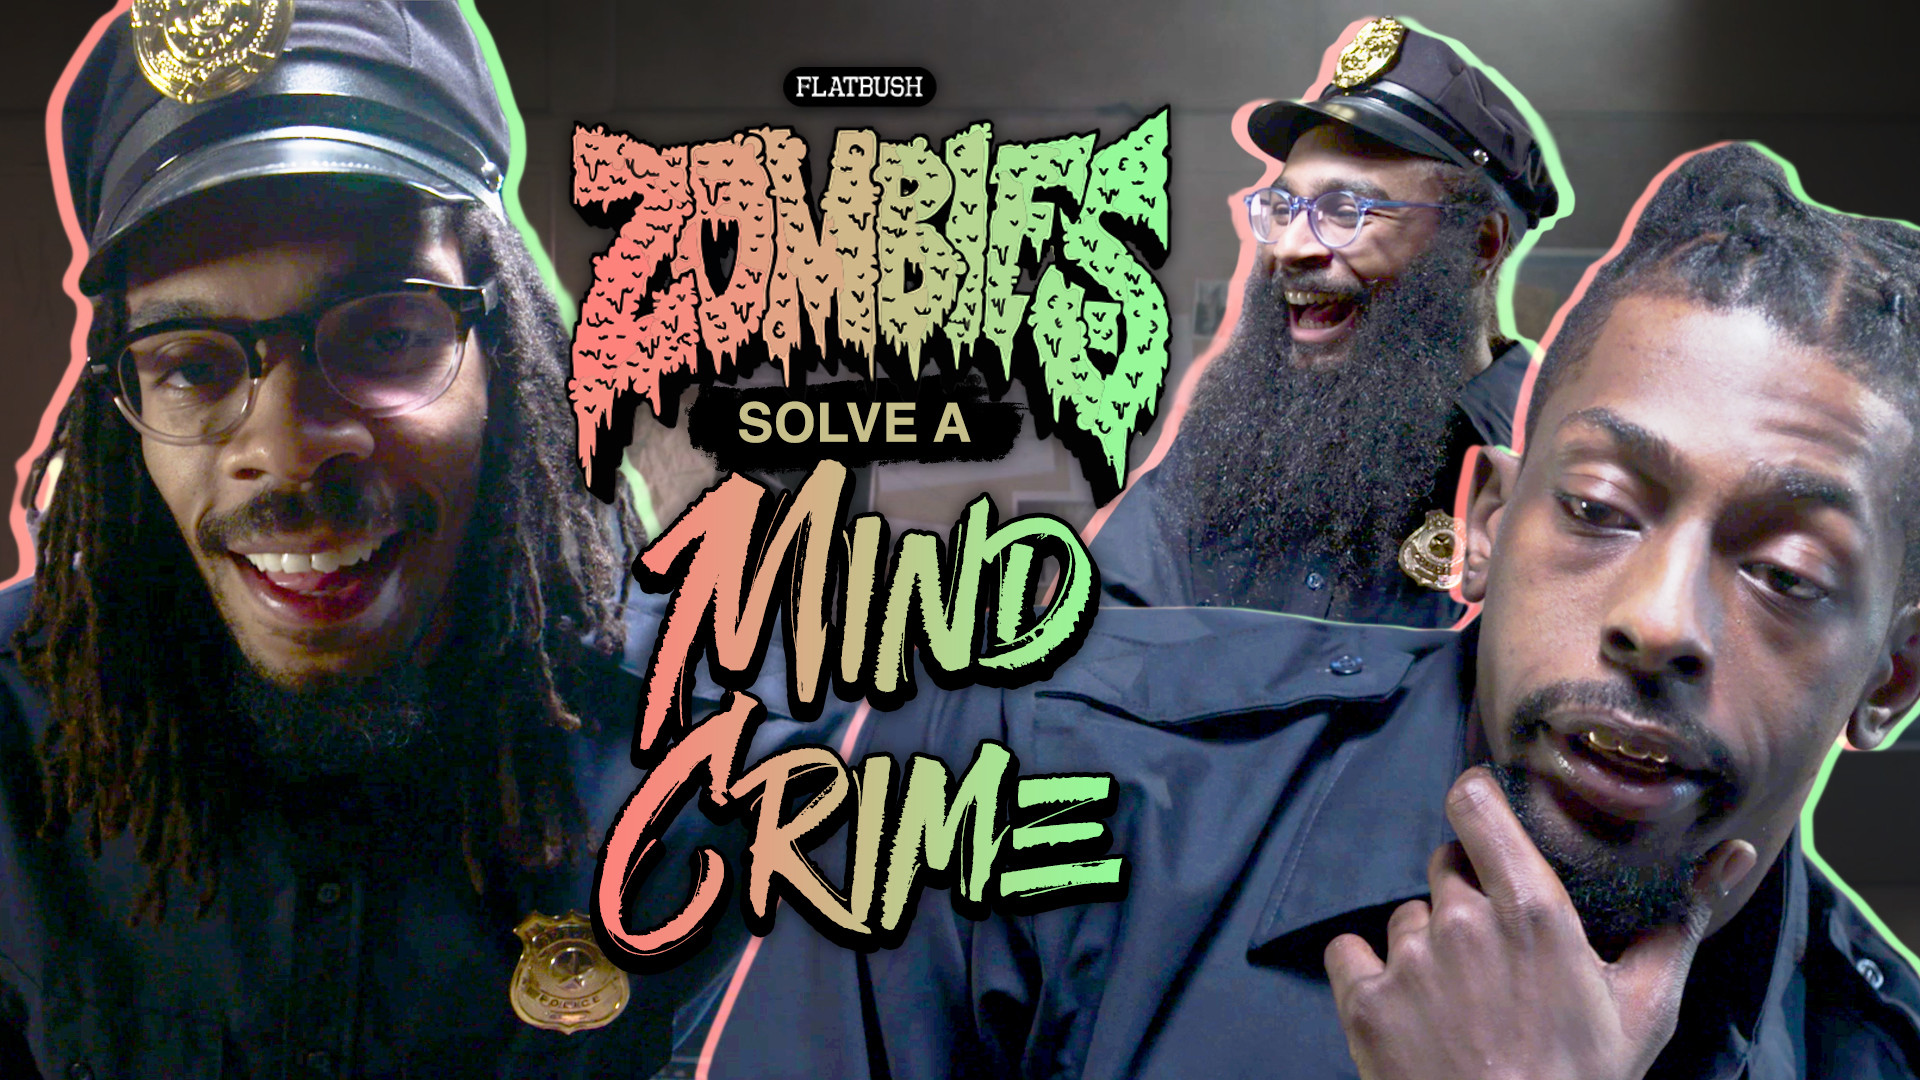 Watch Flatbush Zombies Solve A Mind Crime In A Surreal Comedy Sketch –  Stereogum